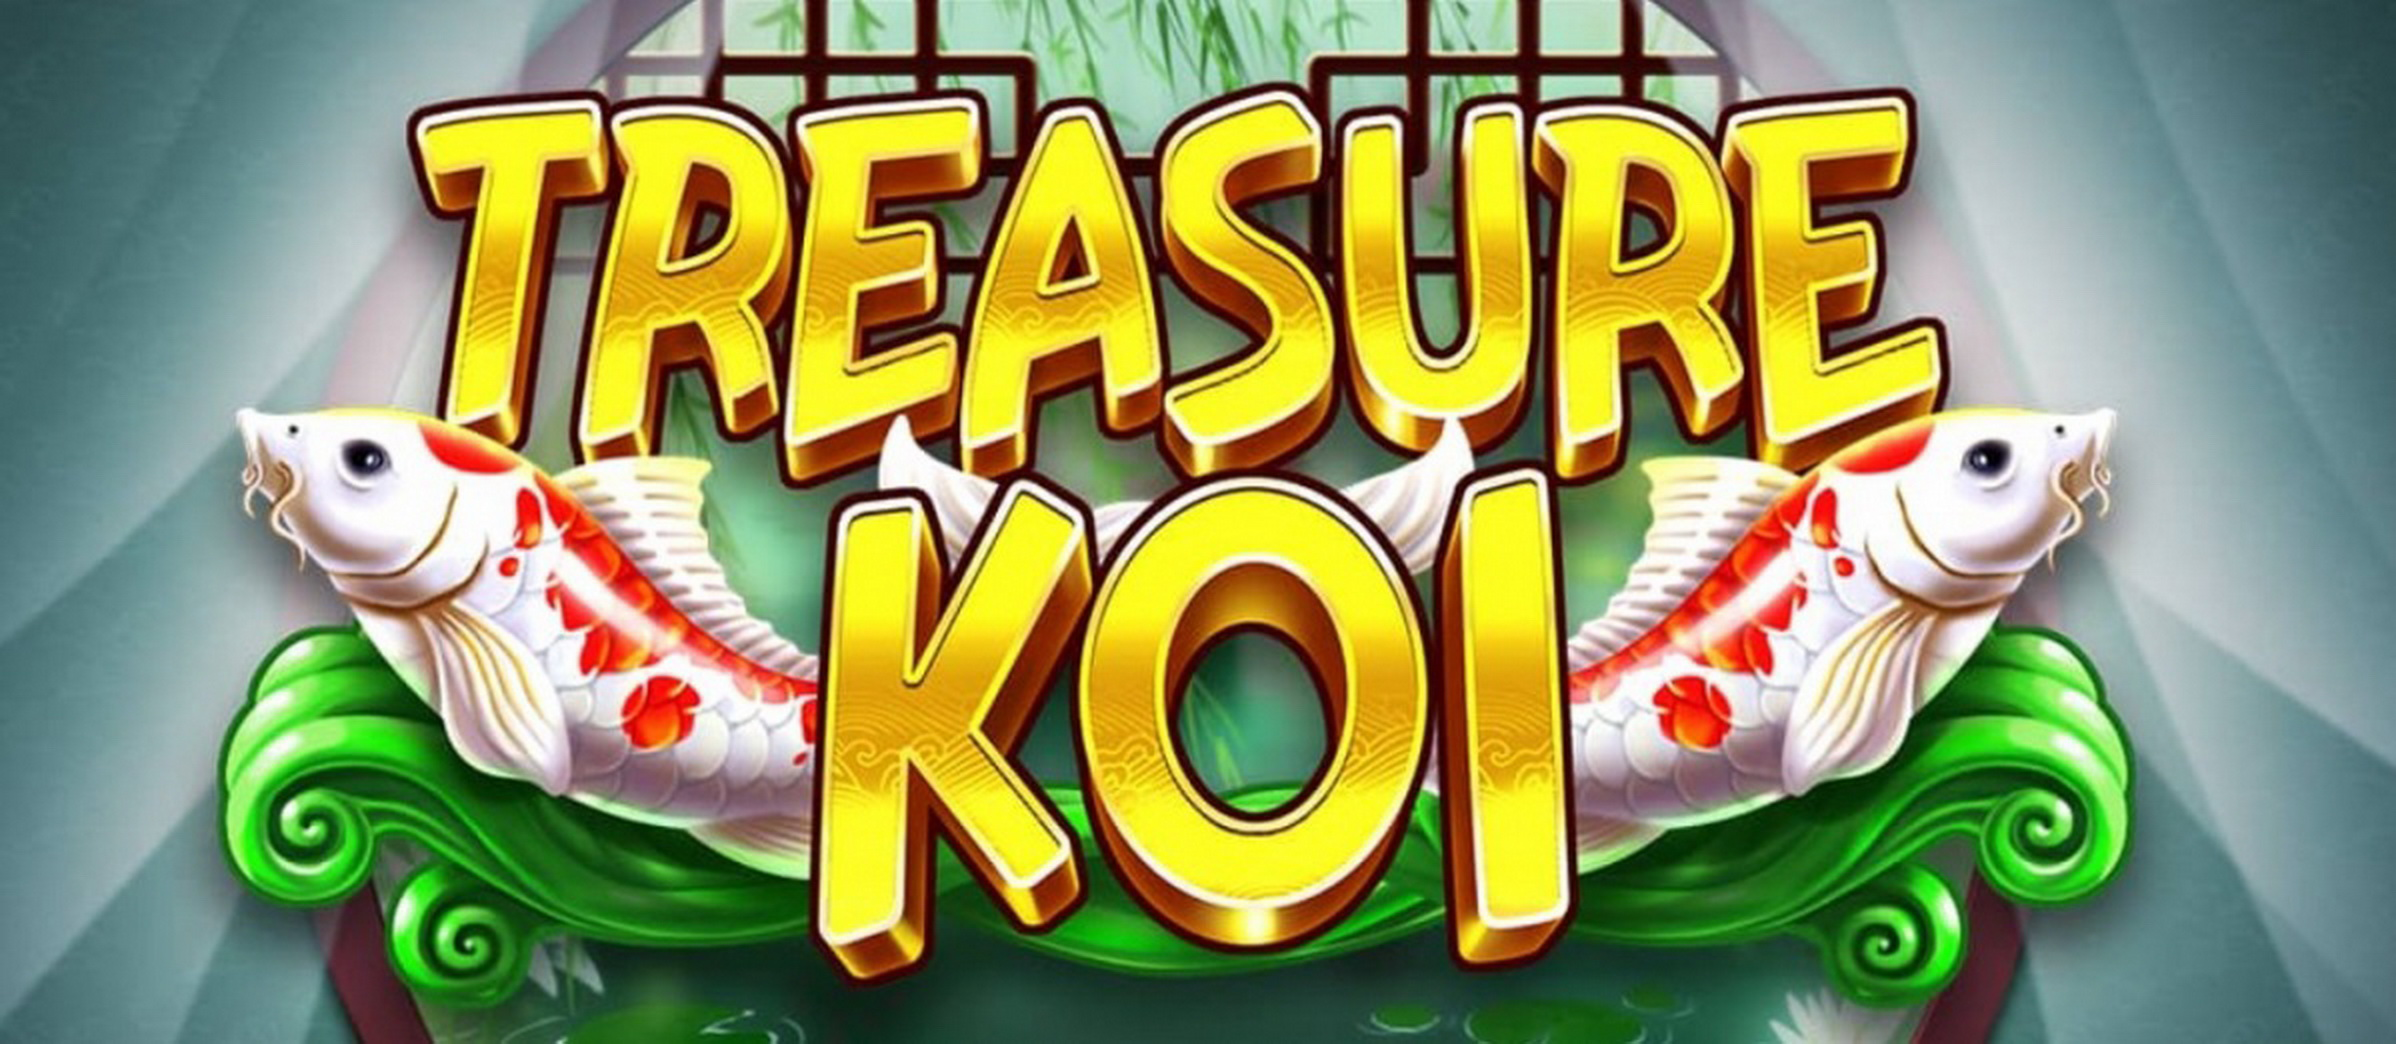 Treasure Koi Online Slot Demo Game by Aspect Gaming